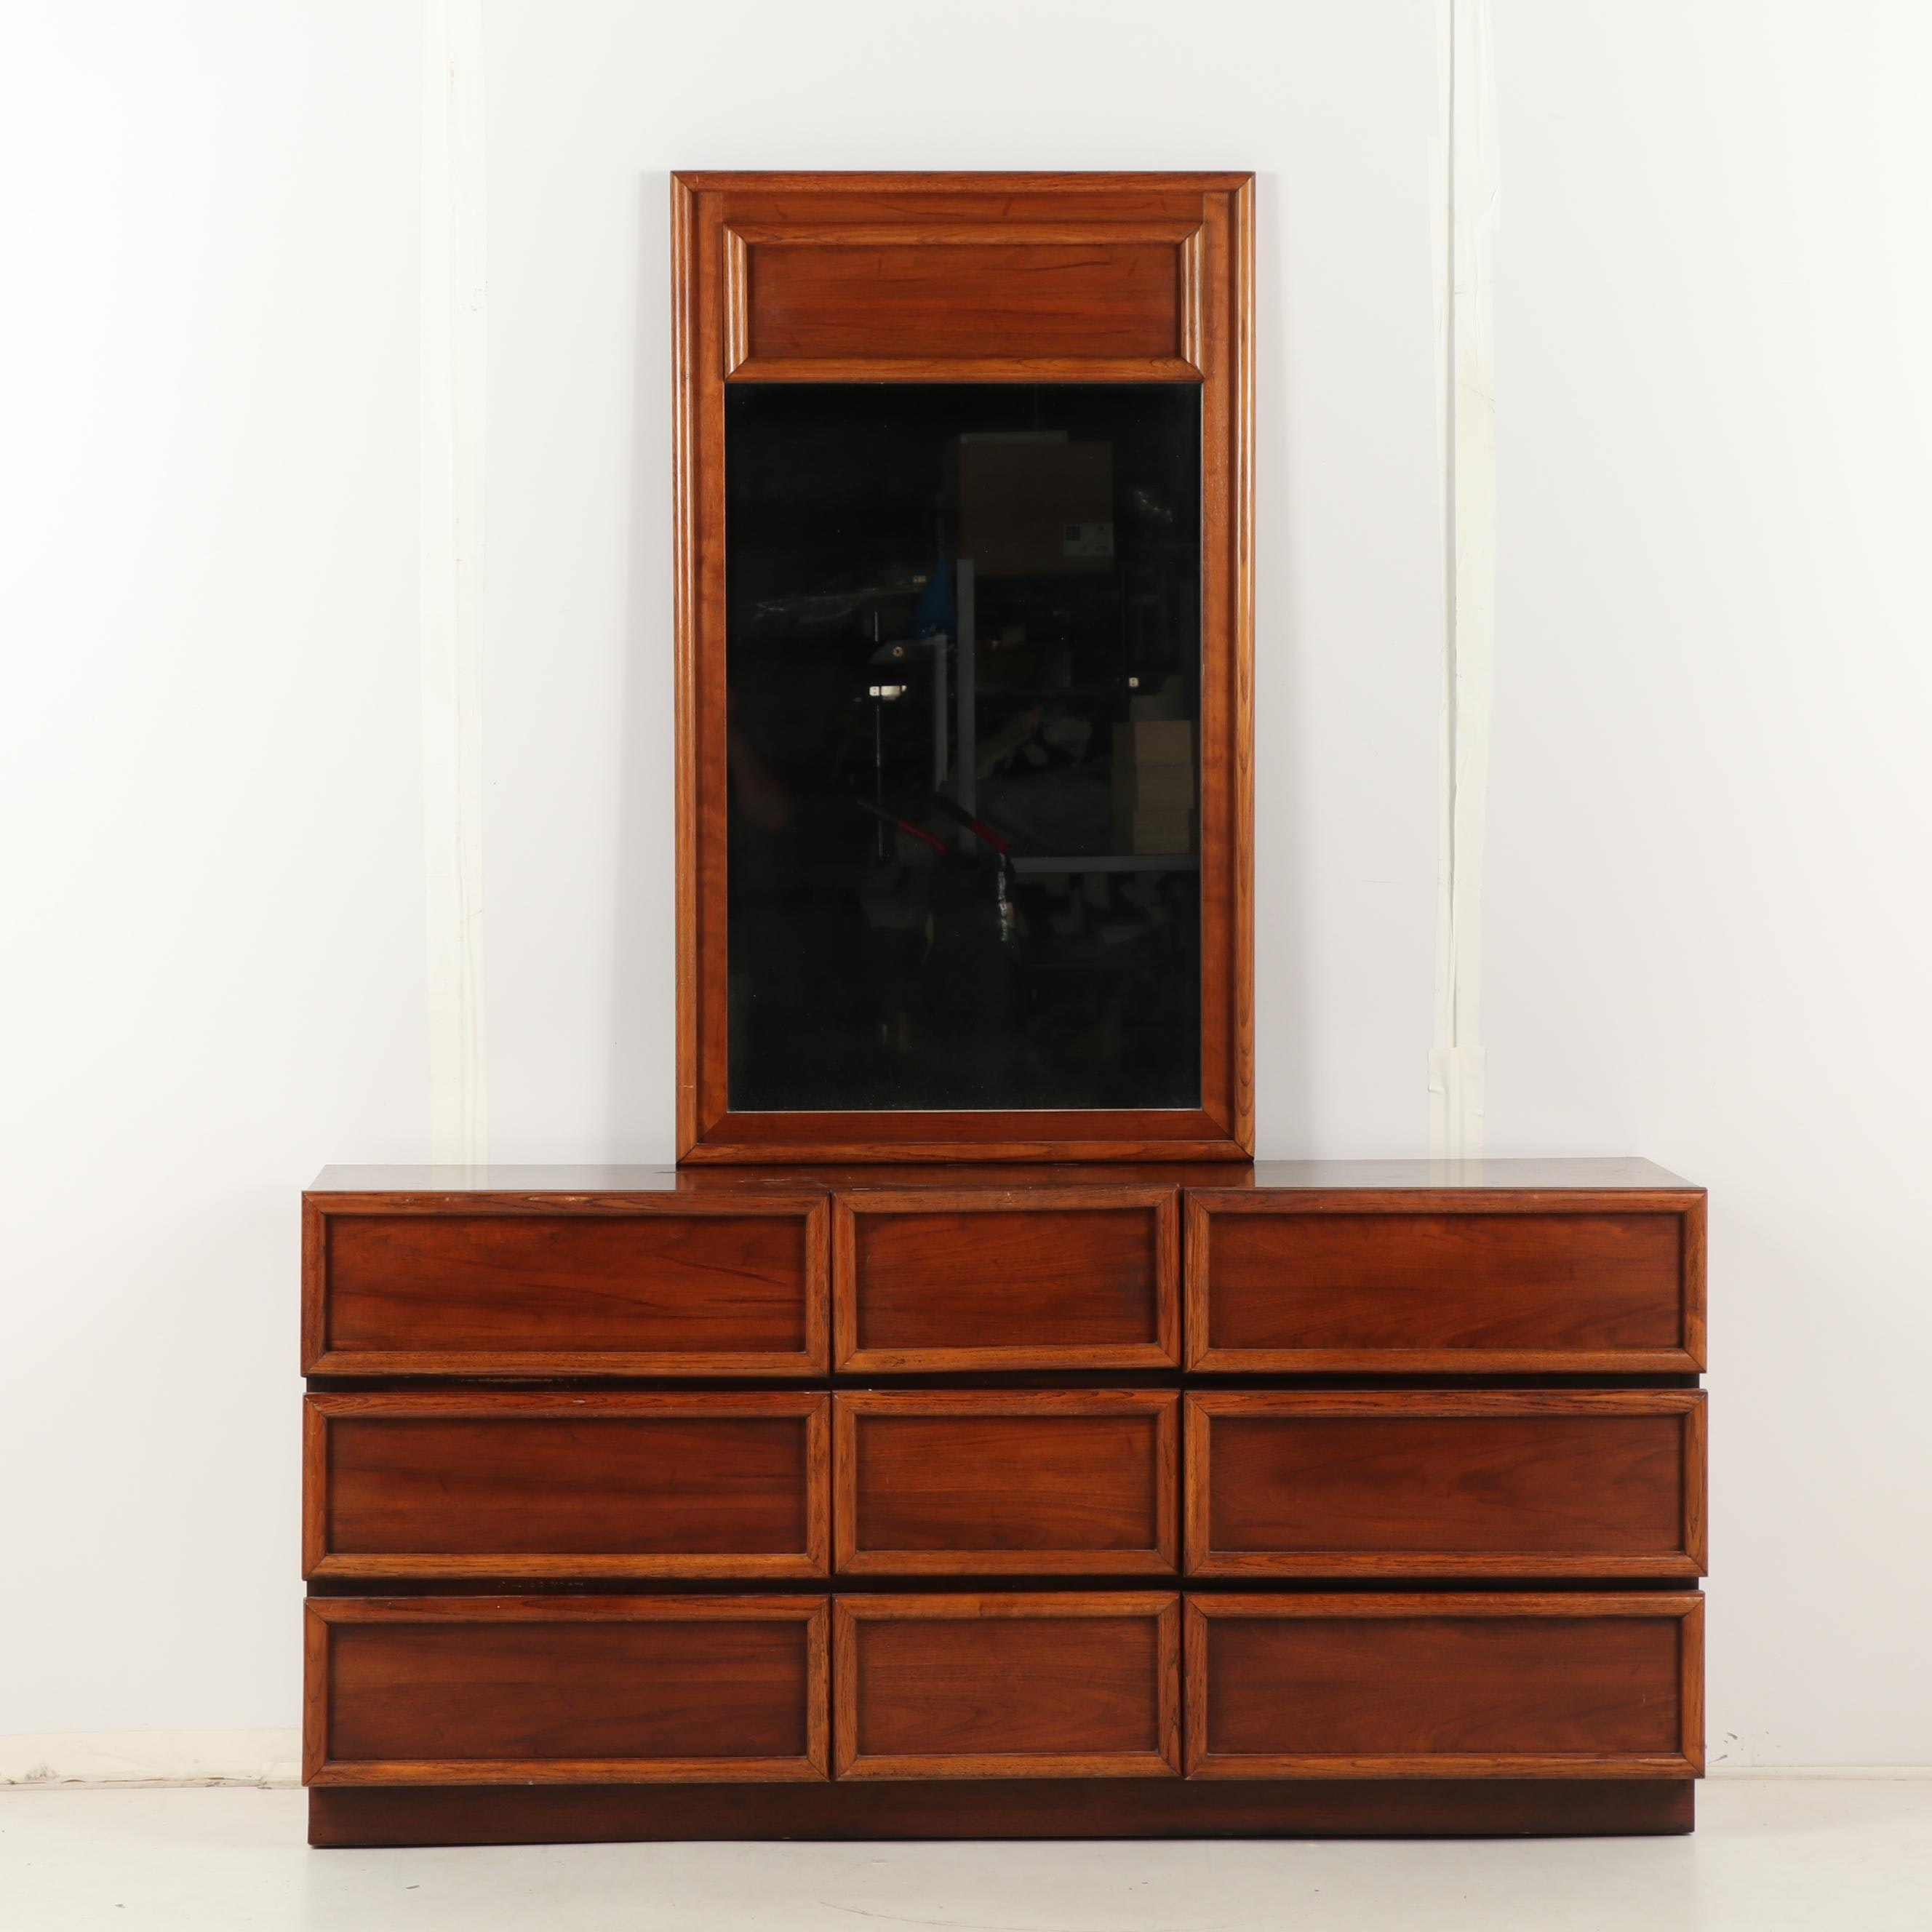 Contemporary Fruitwood Dresser with Attached Mirror, Mid to Late 20th Century